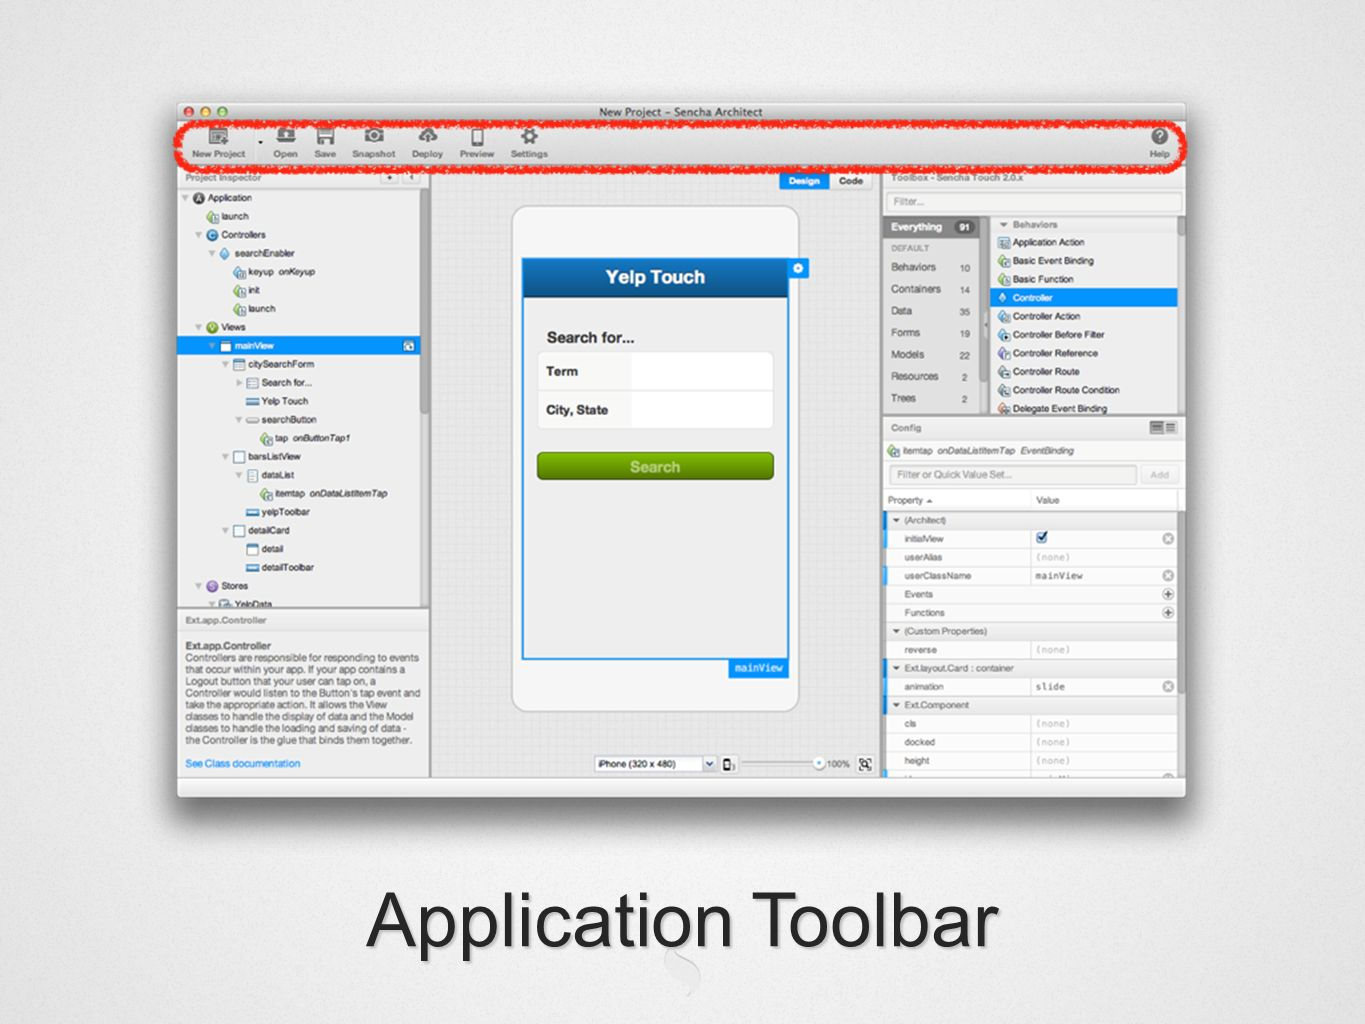 Application Toolbar